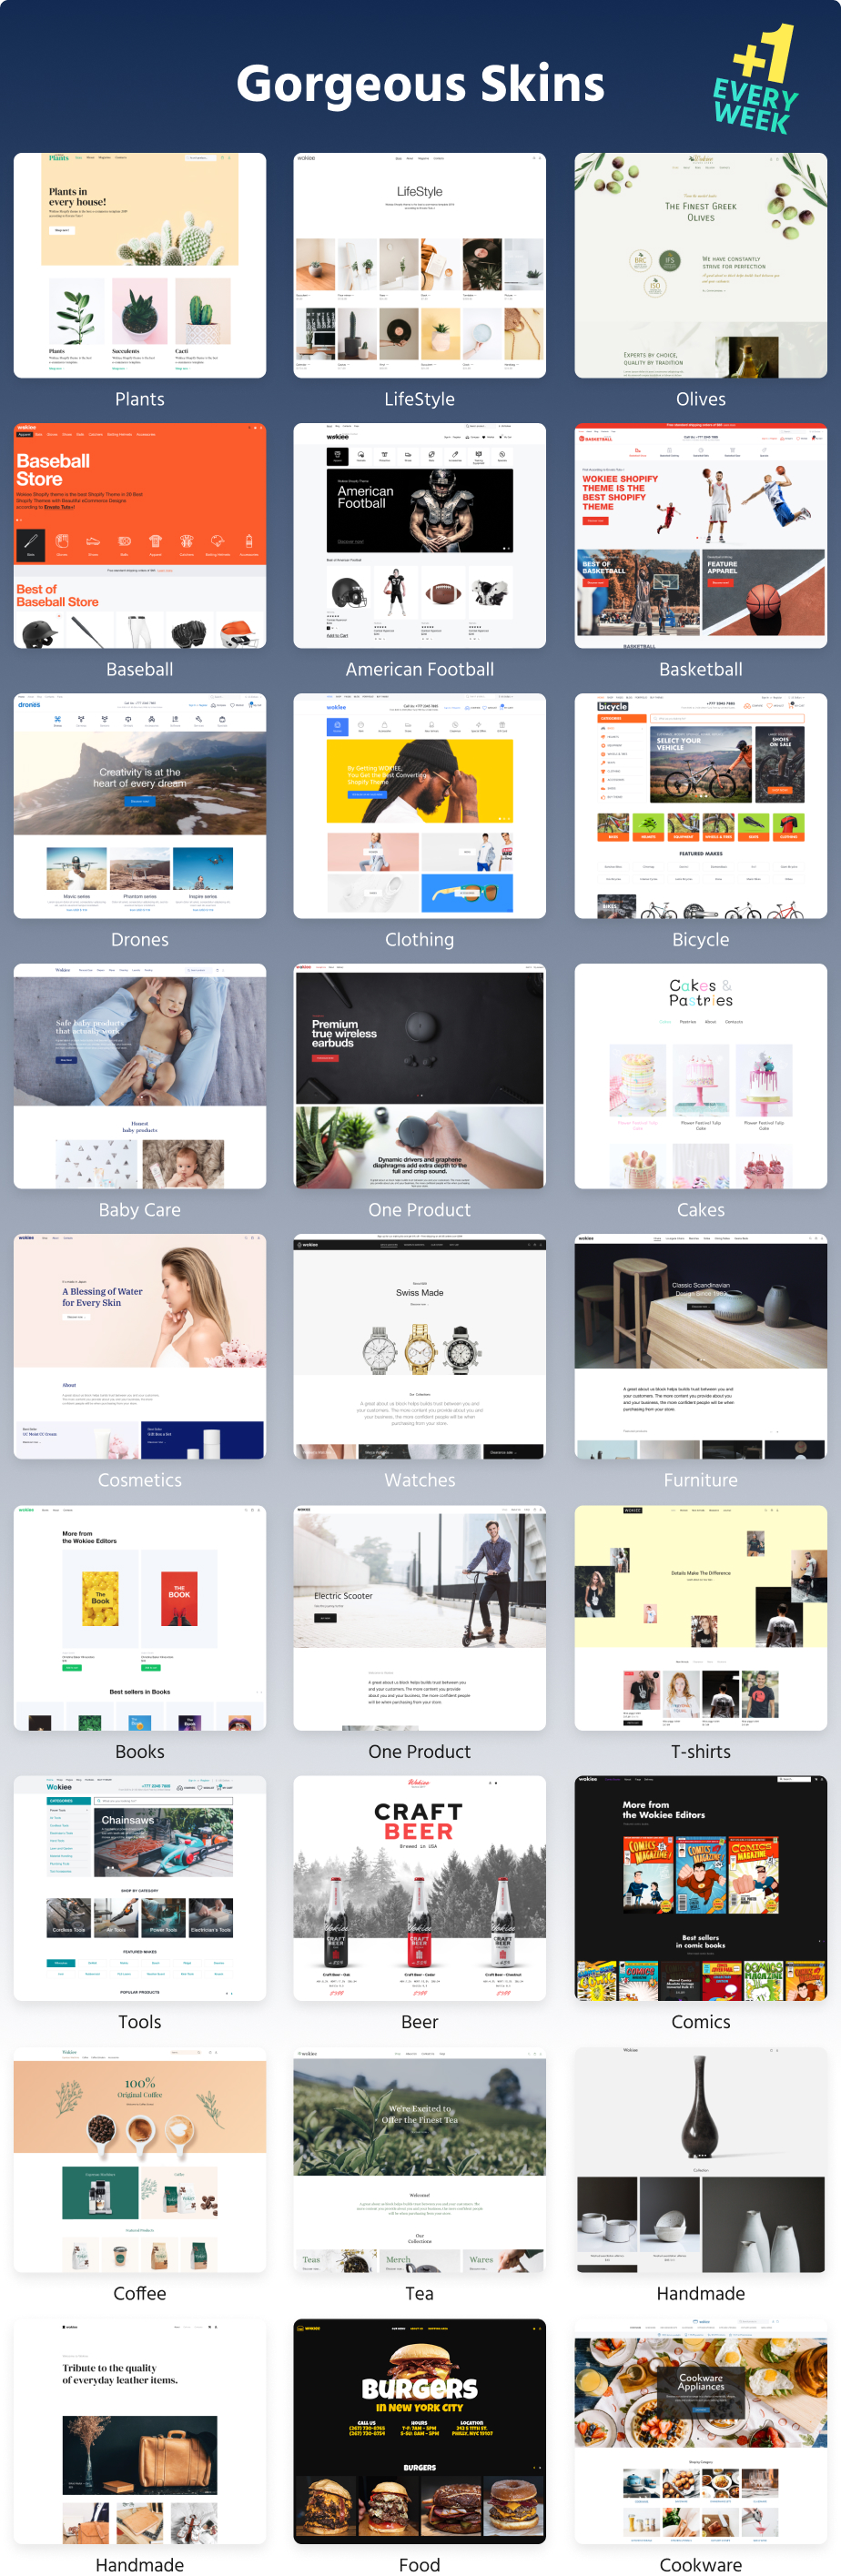 Wokiee - Multipurpose Shopify Theme - 21